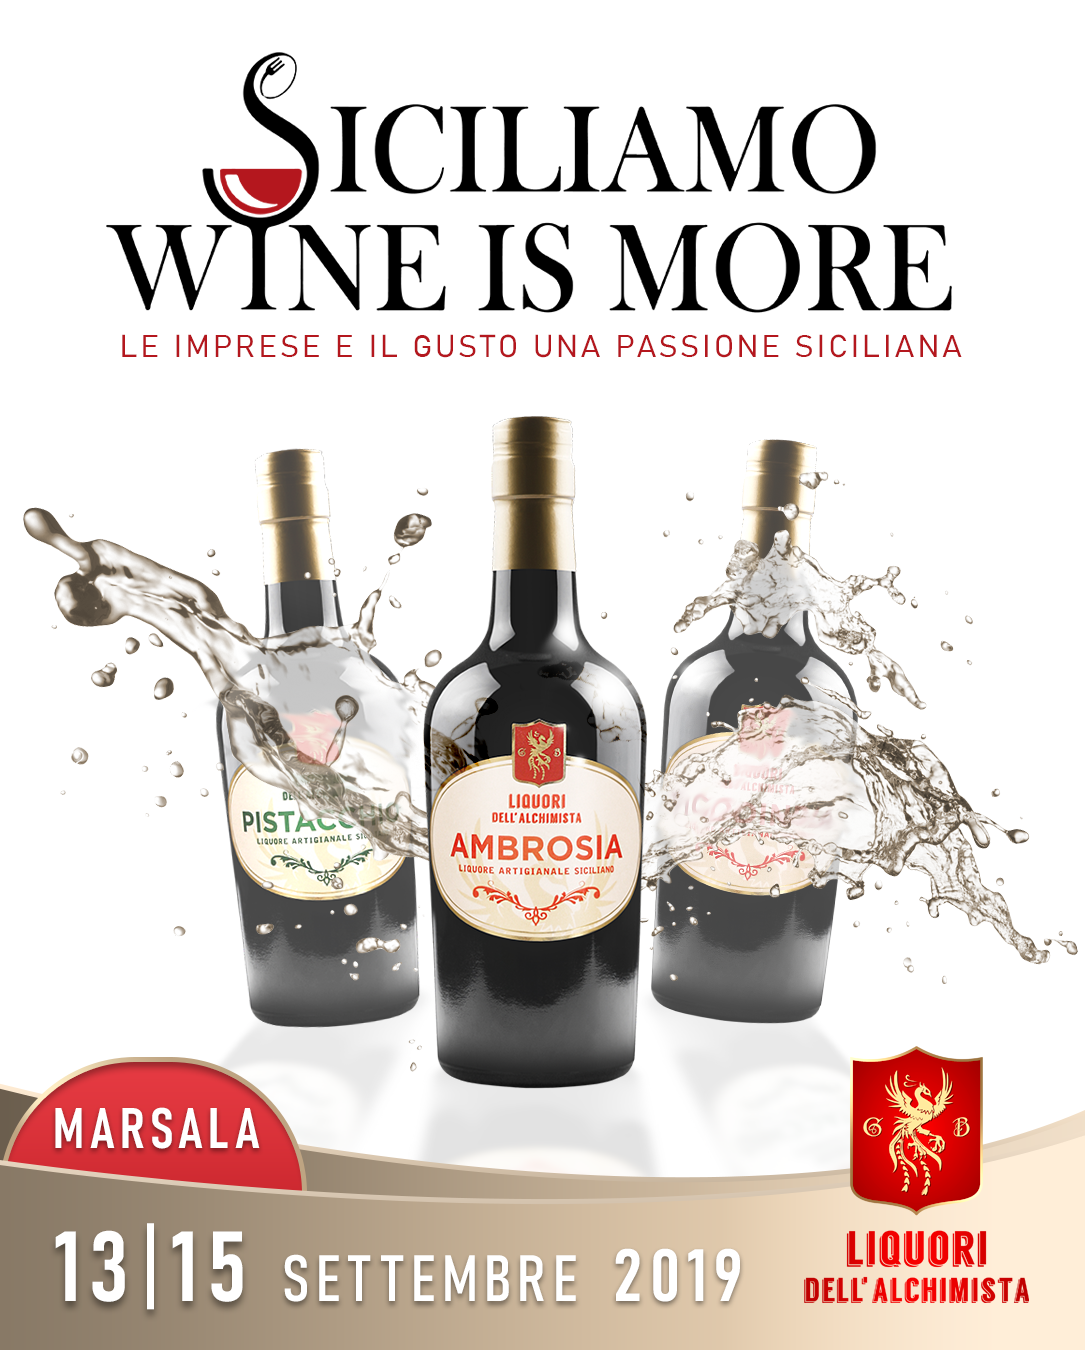 SICILIAMO WINE IS MORE